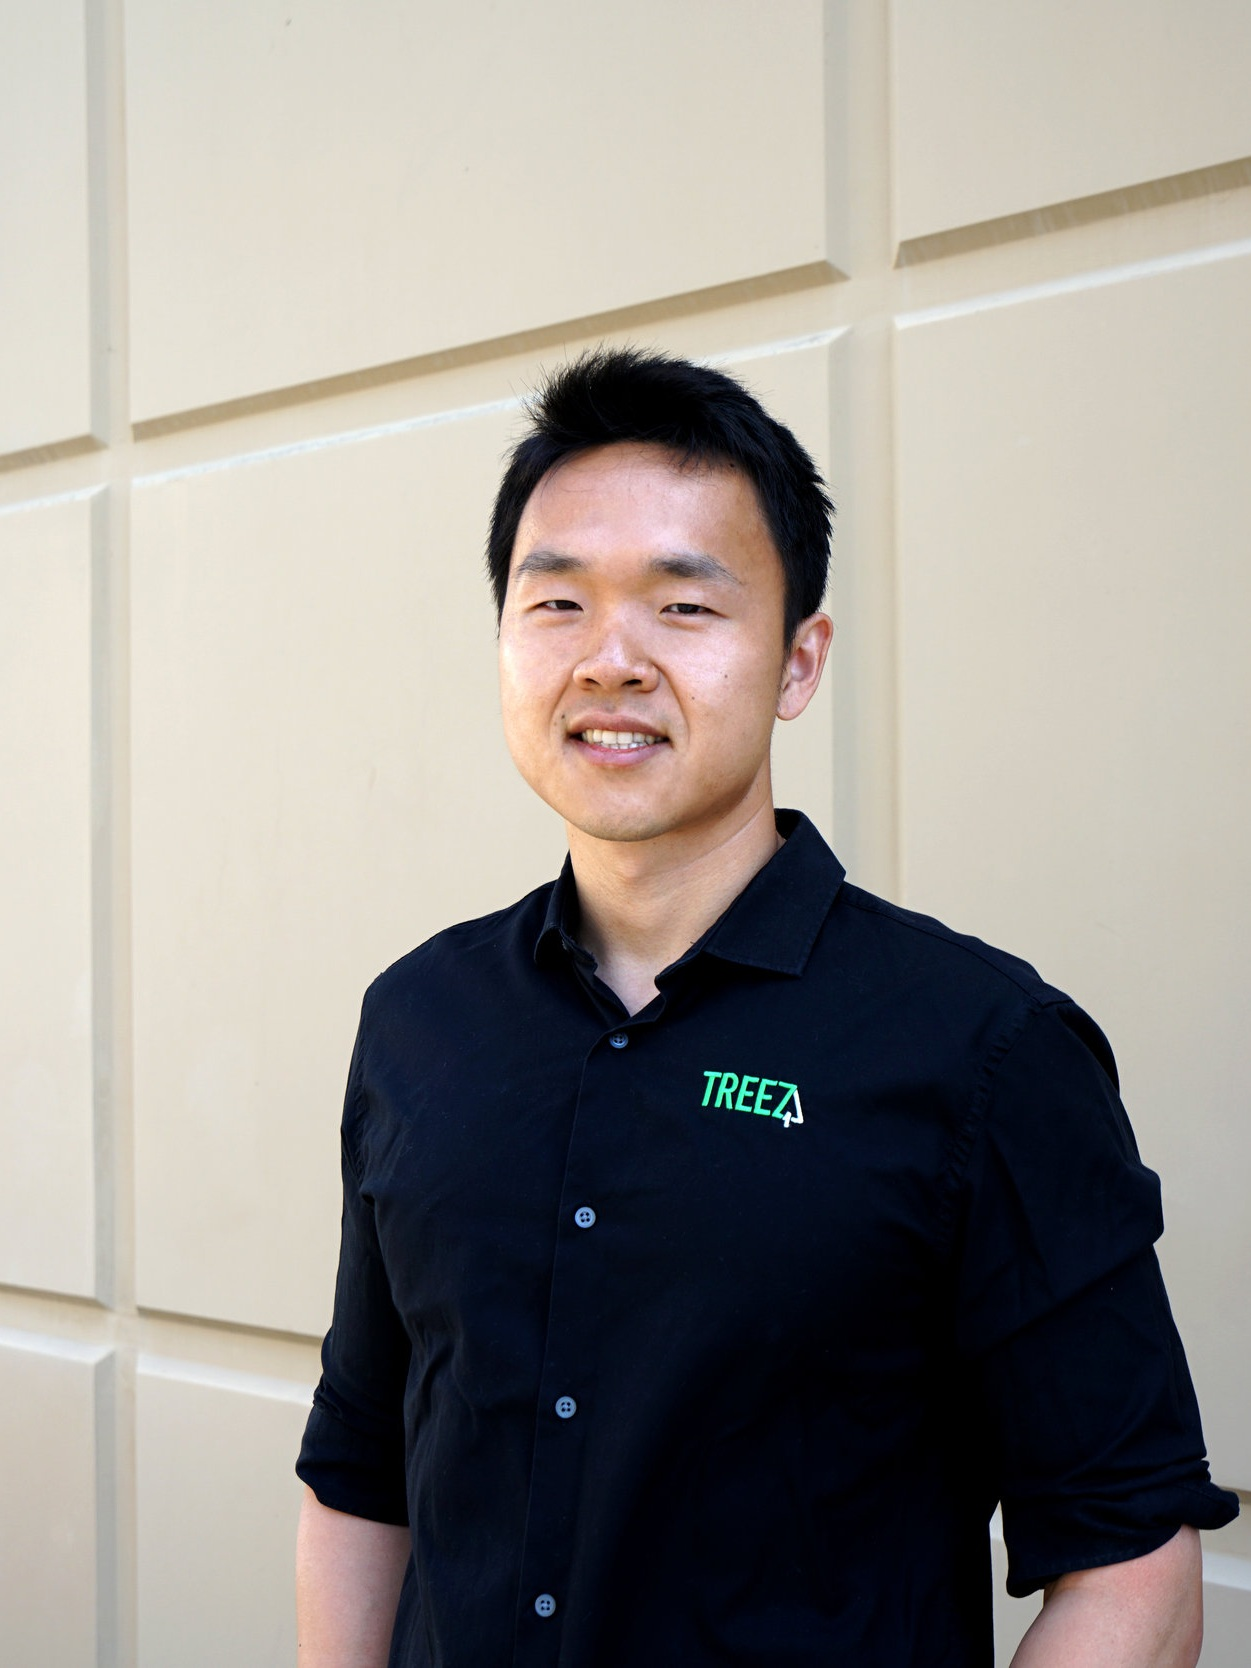 JOHN YANG - CO-FOUNDER & CEOJohn co-founded Treez in 2016. Born Hai-Meng Yang, he began his entrepreneurial journey as a 12 year old inside his father's computer shop - selling, building, and solving problems using technology. As a seasoned technology management expert, John is building software solutions that drive innovation and workflow automation throughout the cannabis industry.Prior to Treez, John was a consultant at Slalom Consulting – ranked #3 in the world for business and technology consulting. Slalom's services ranged from broad areas like program management, business process improvement, and software development, to specialized solutions like CRM, and Business Intelligence. Earlier in his career, John was a consultant with Accenture as an experienced information technology management professional analyzing, designing, consulting, deploying and managing software development applications for various sectors.John earned his B.S. in Managerial Economics at U.C. Davis.